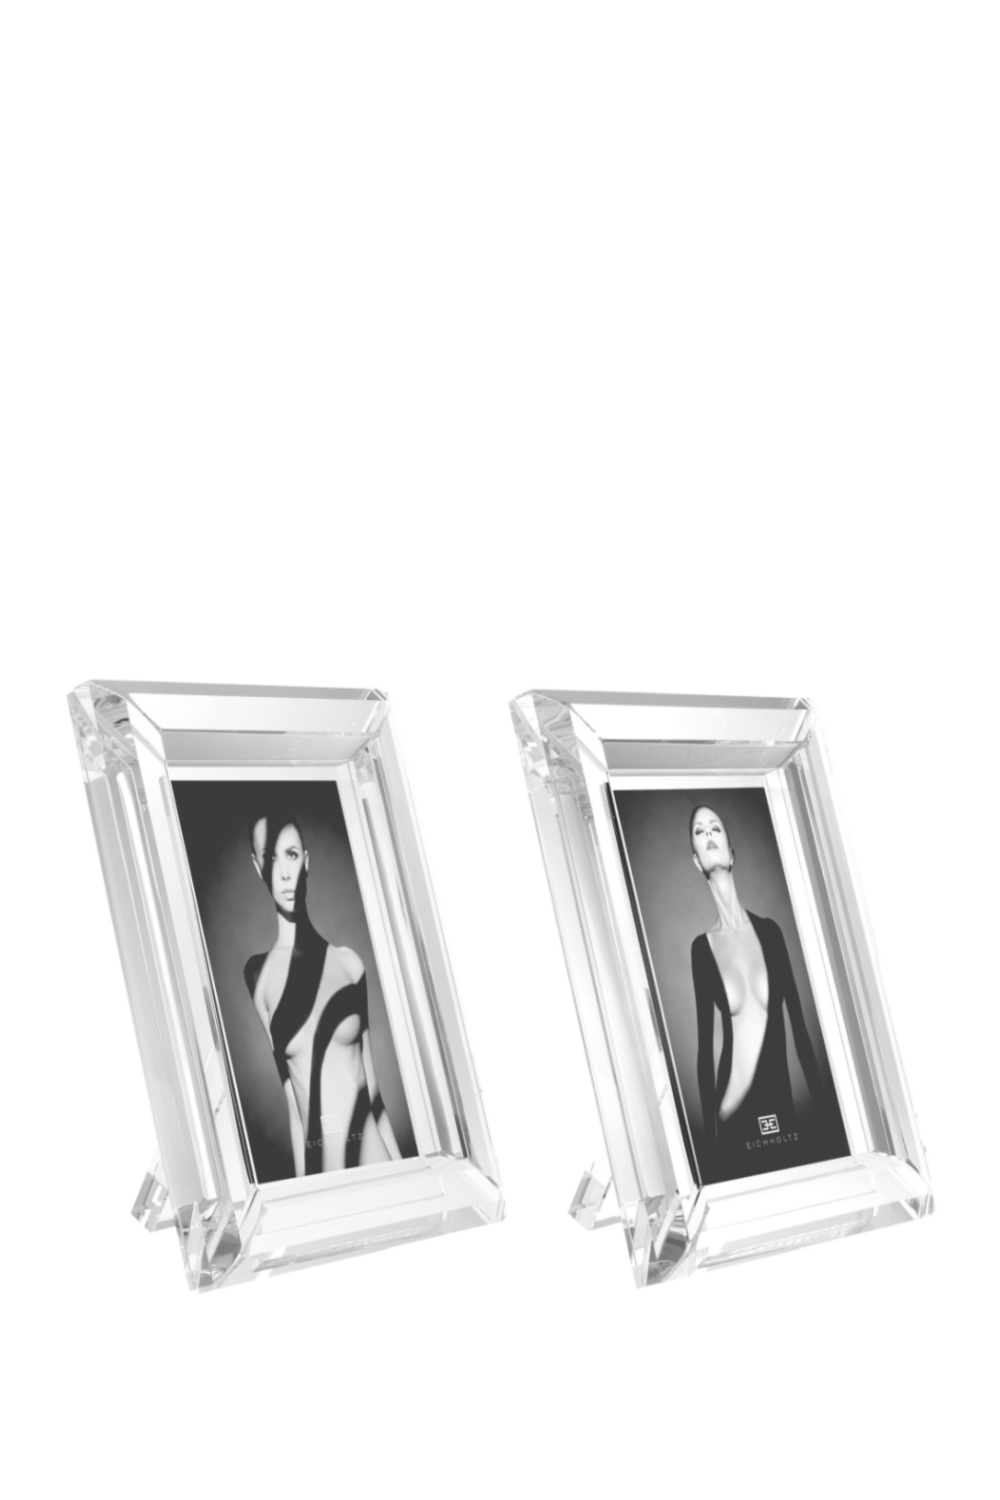 Crystal Picture Frames | Eichholtz Theory S